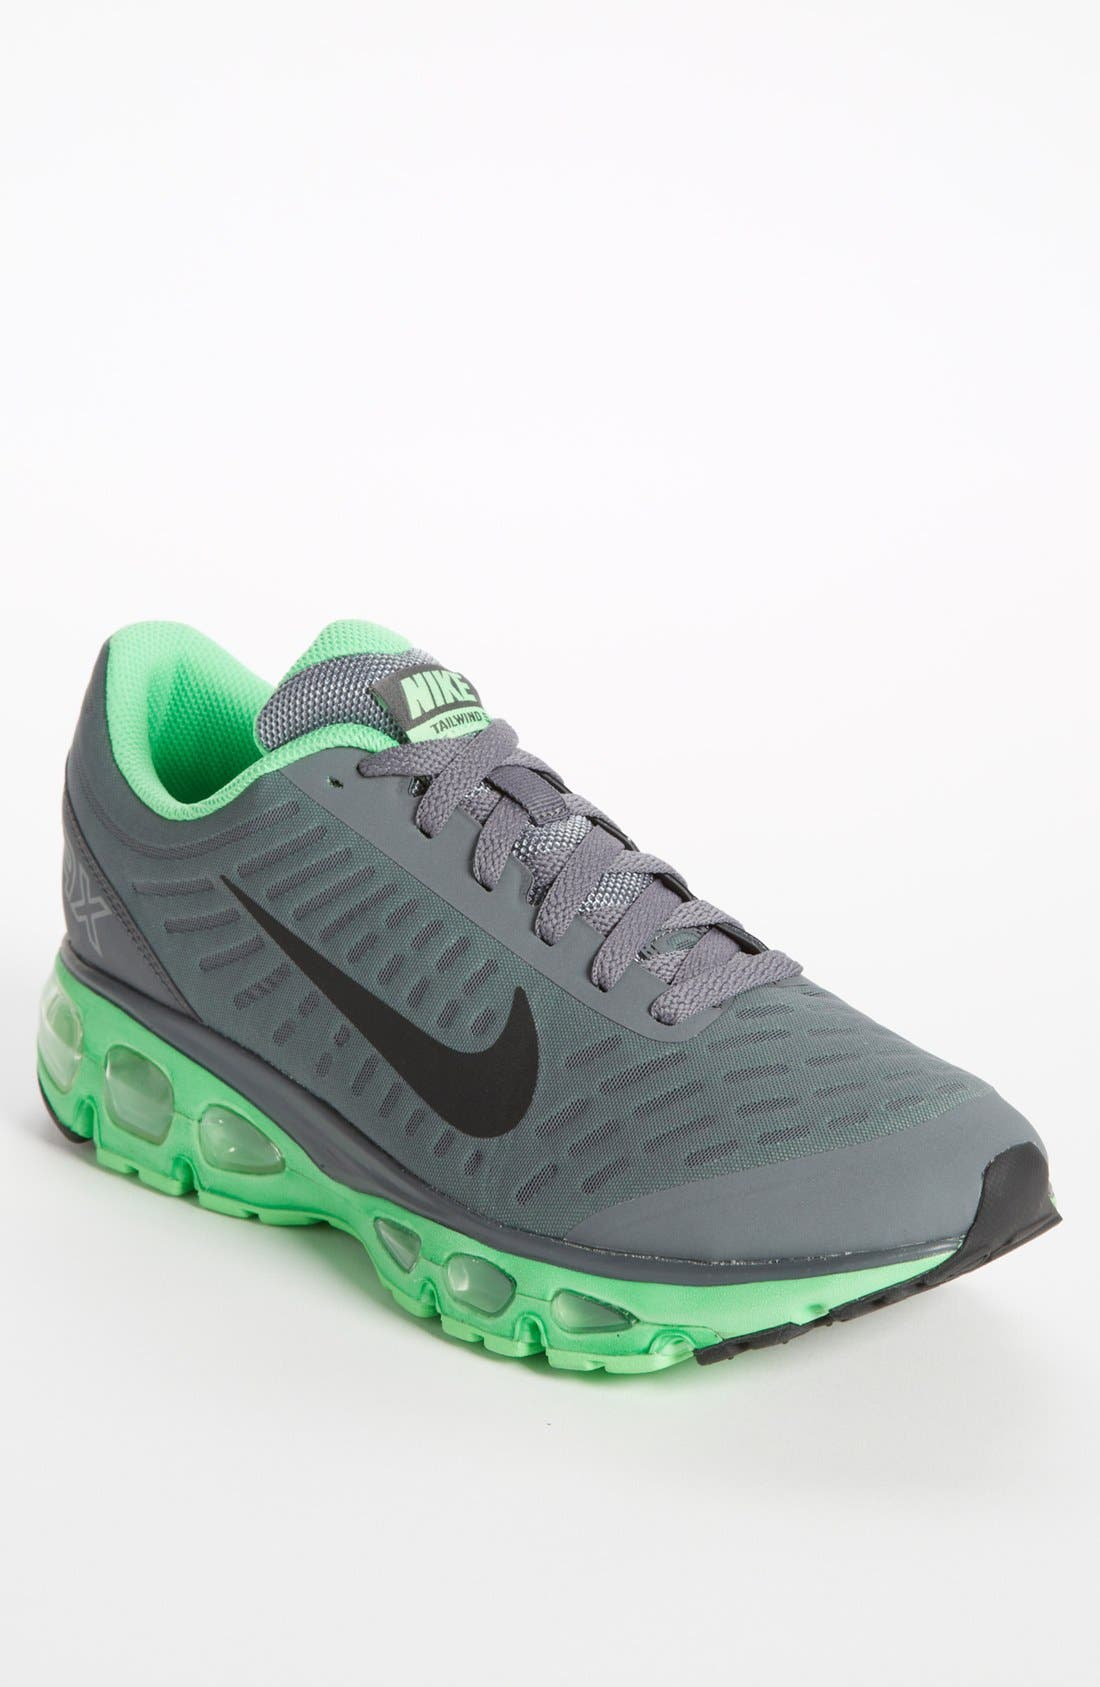 Main Image - Nike 'Air Max Tailwind+ 5' Running Shoe (Men)